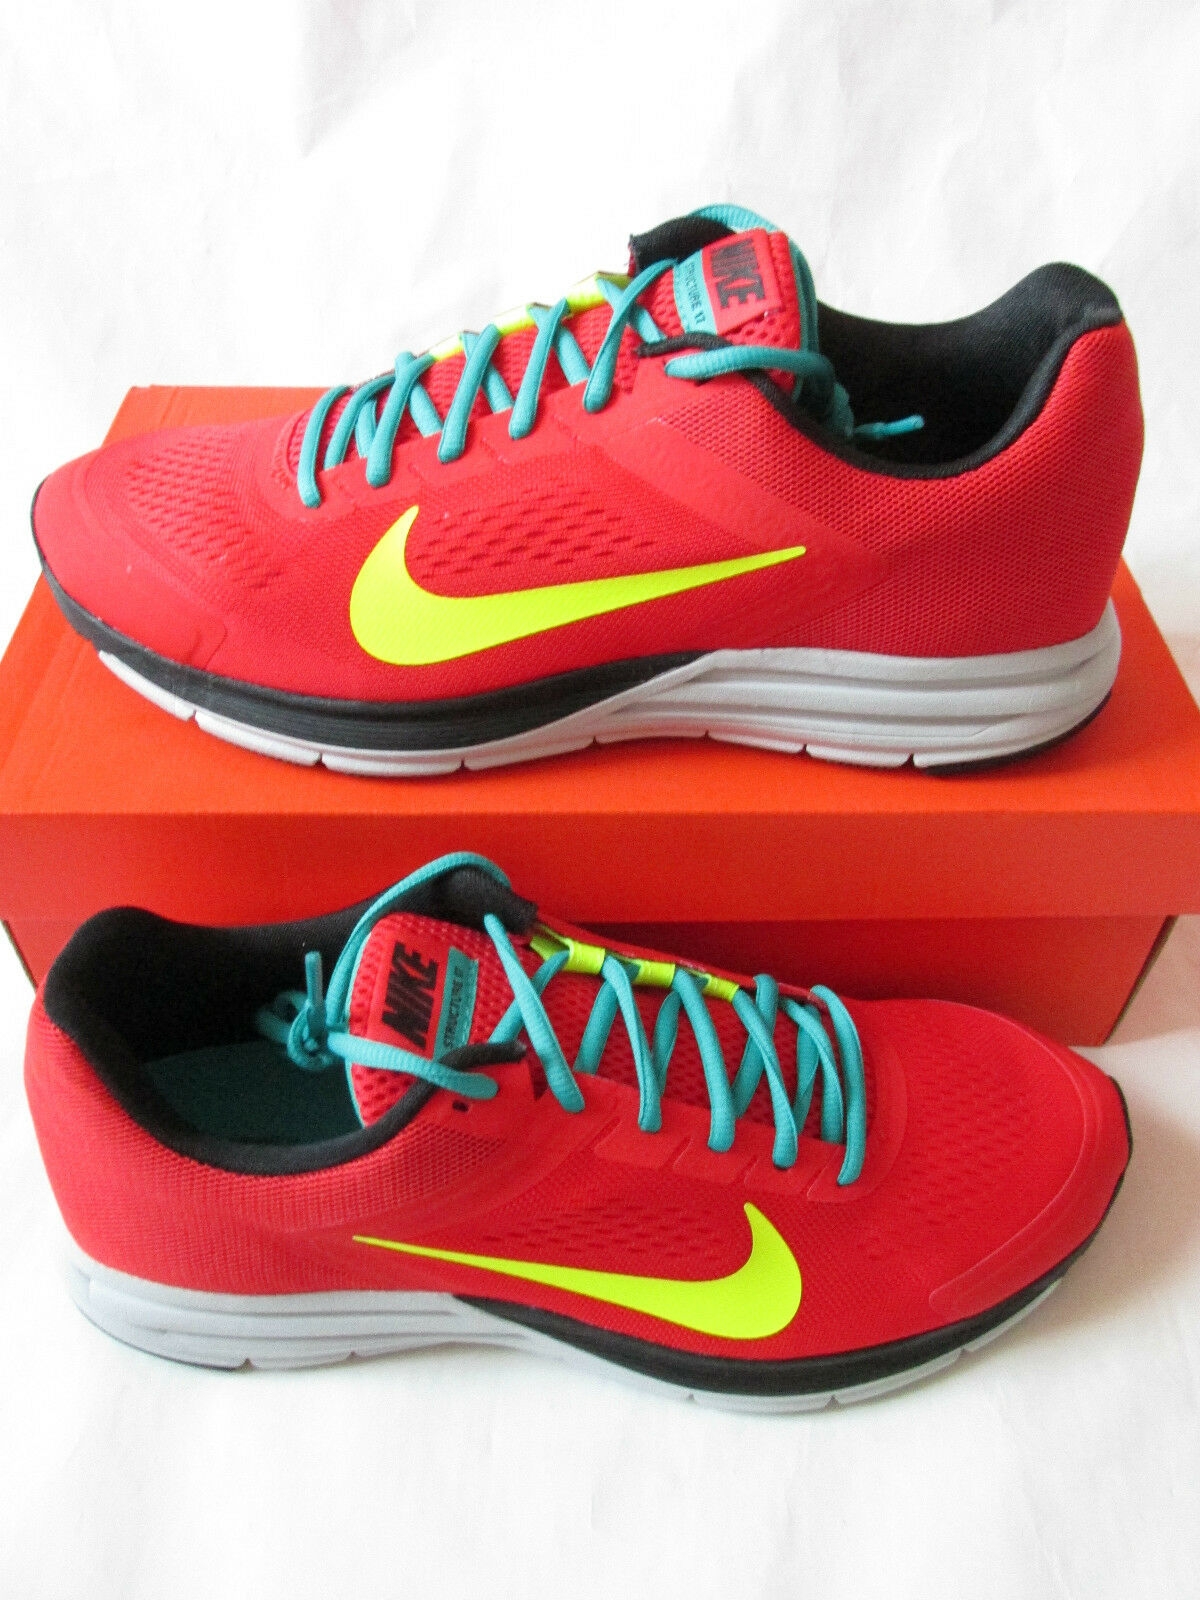 nike zoom structure+ 17 mens running trainers 615587 600 sneakers shoes plus